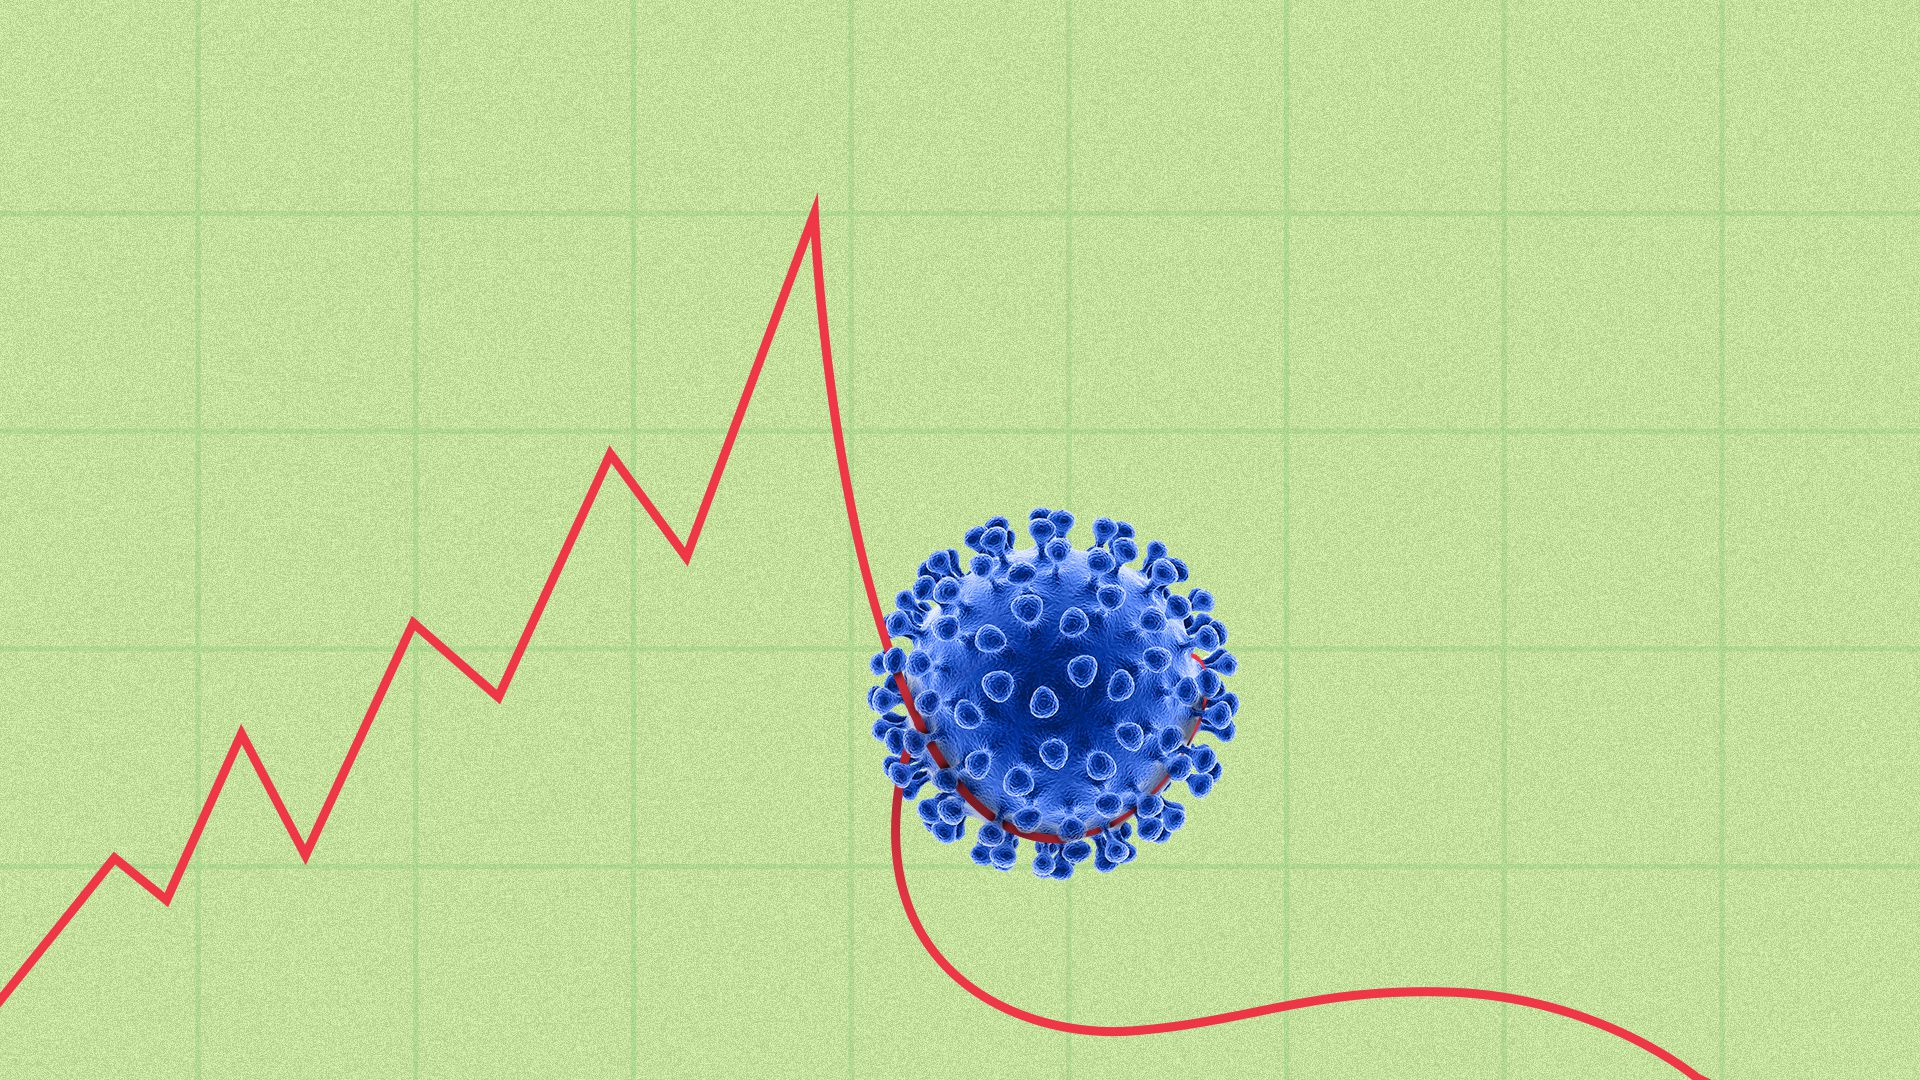 Economists now say the coronavirus could cause a recession